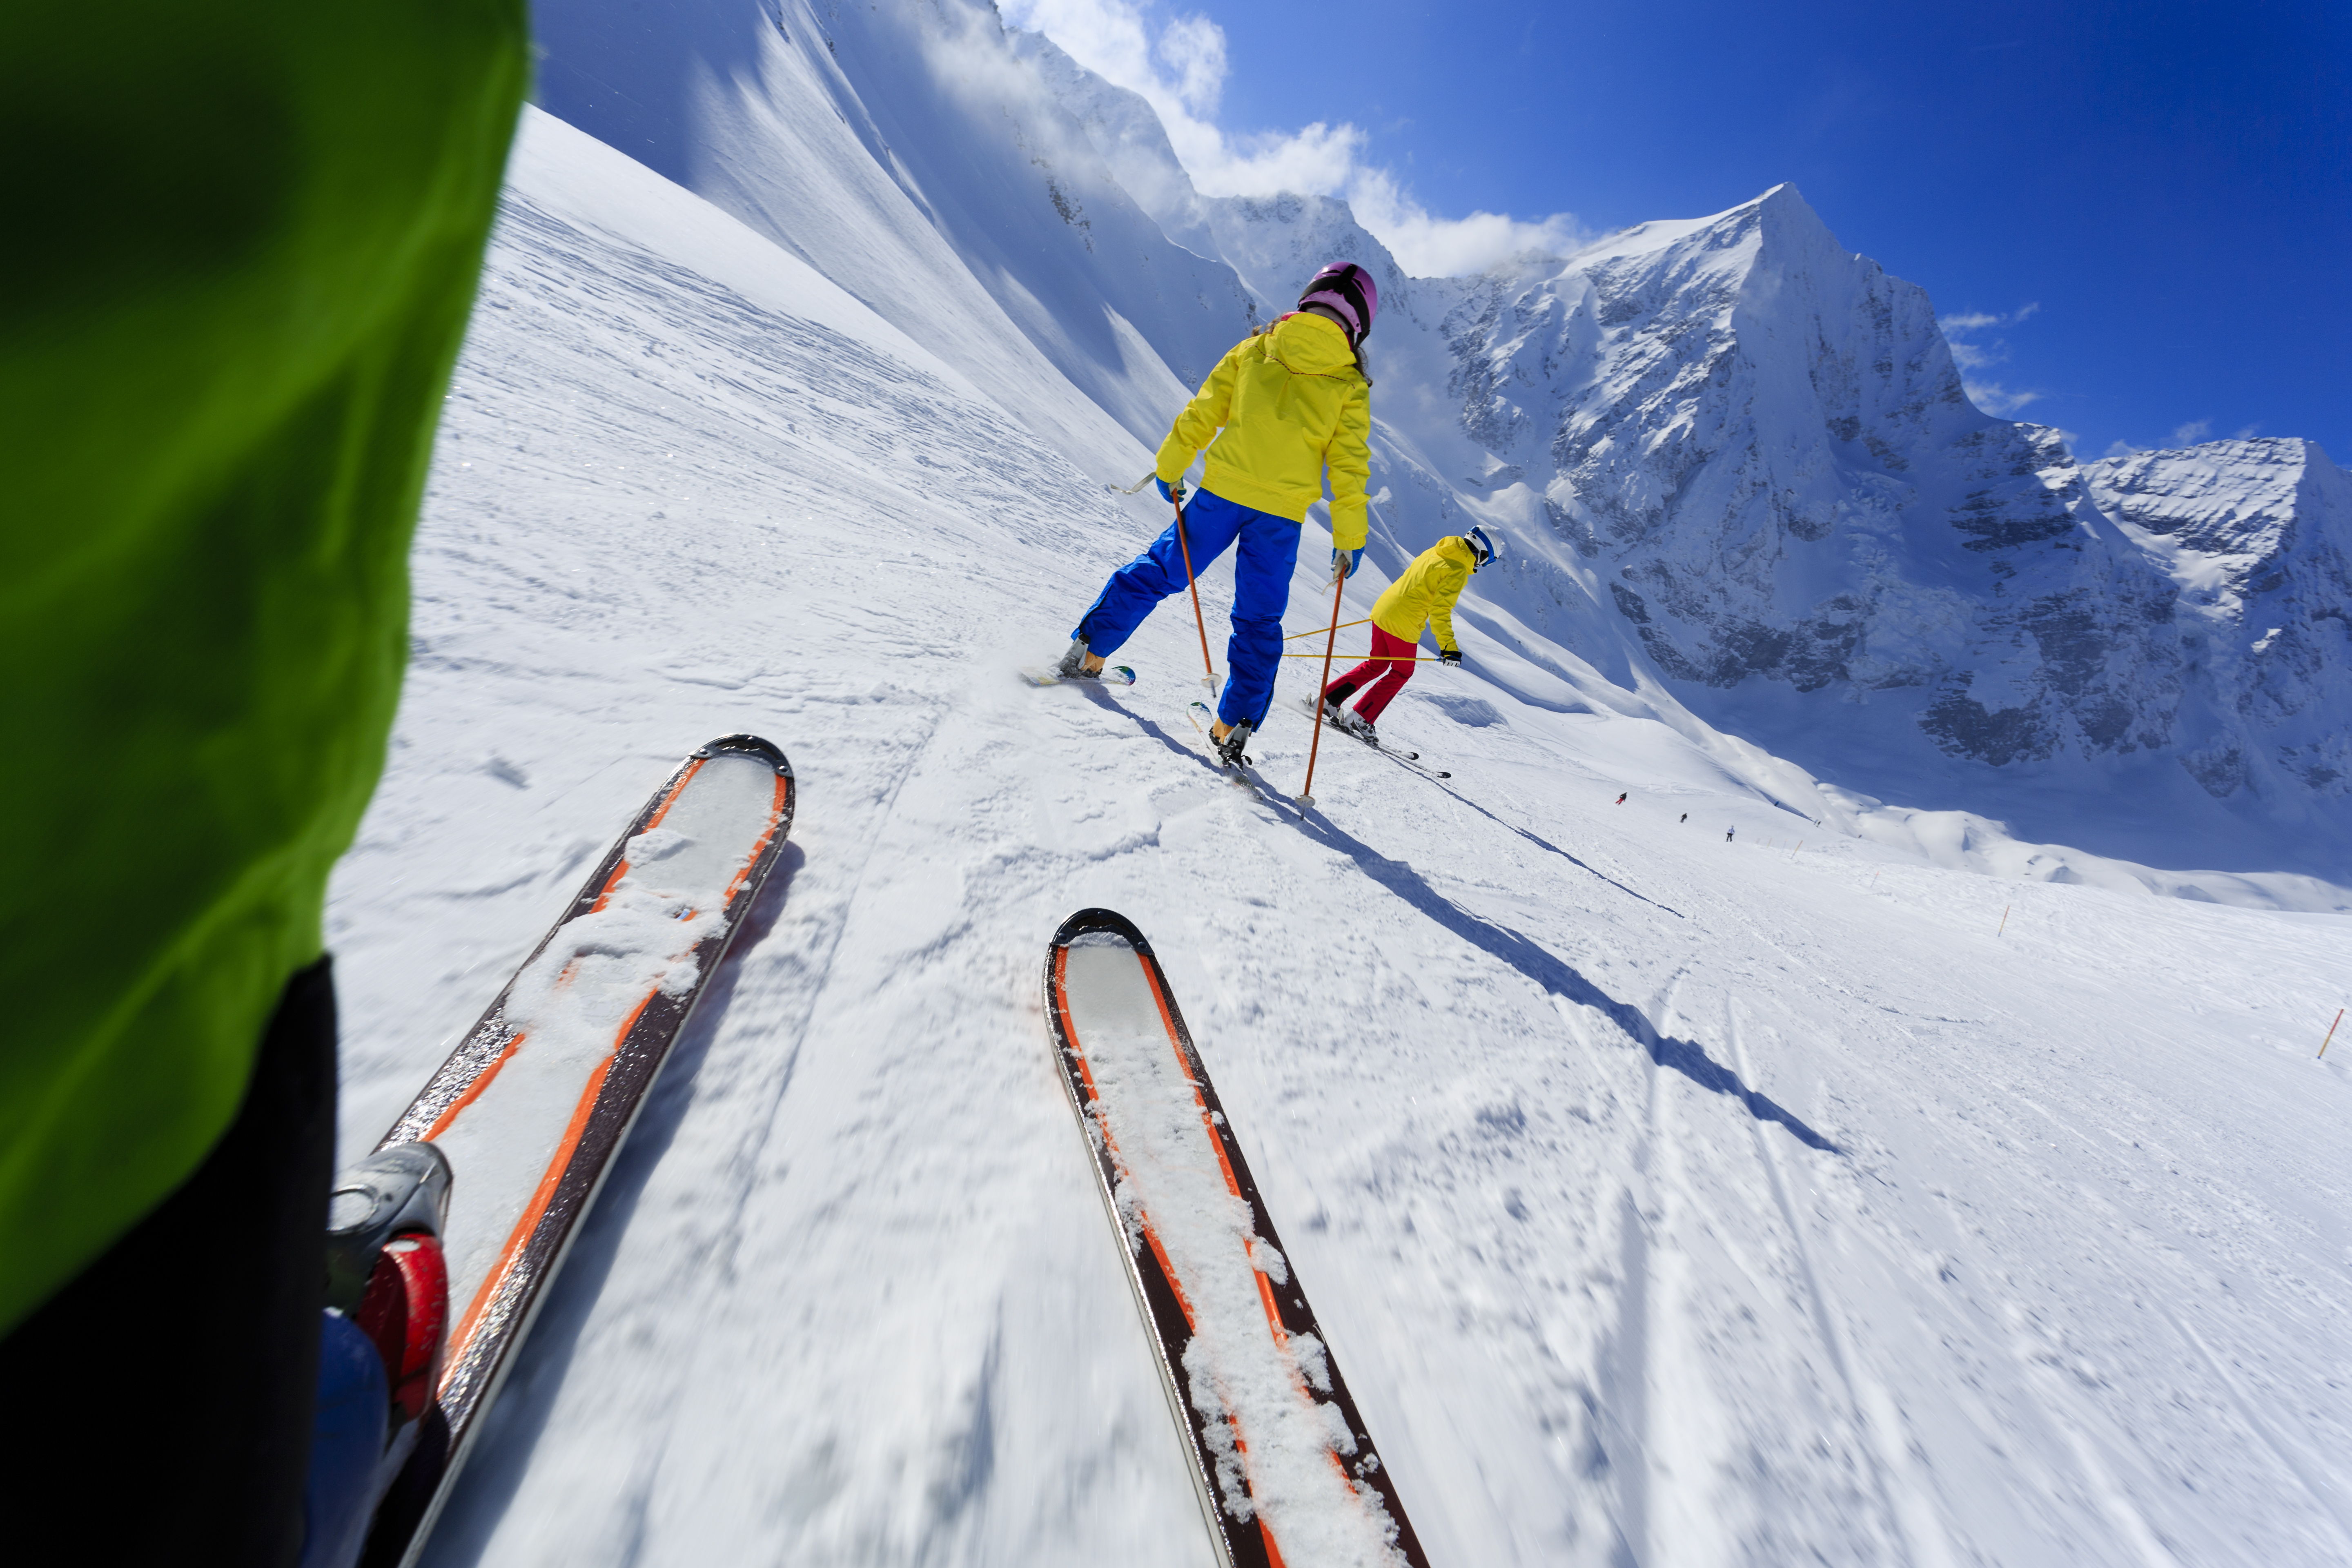 Working as a Ski instructor in Canada